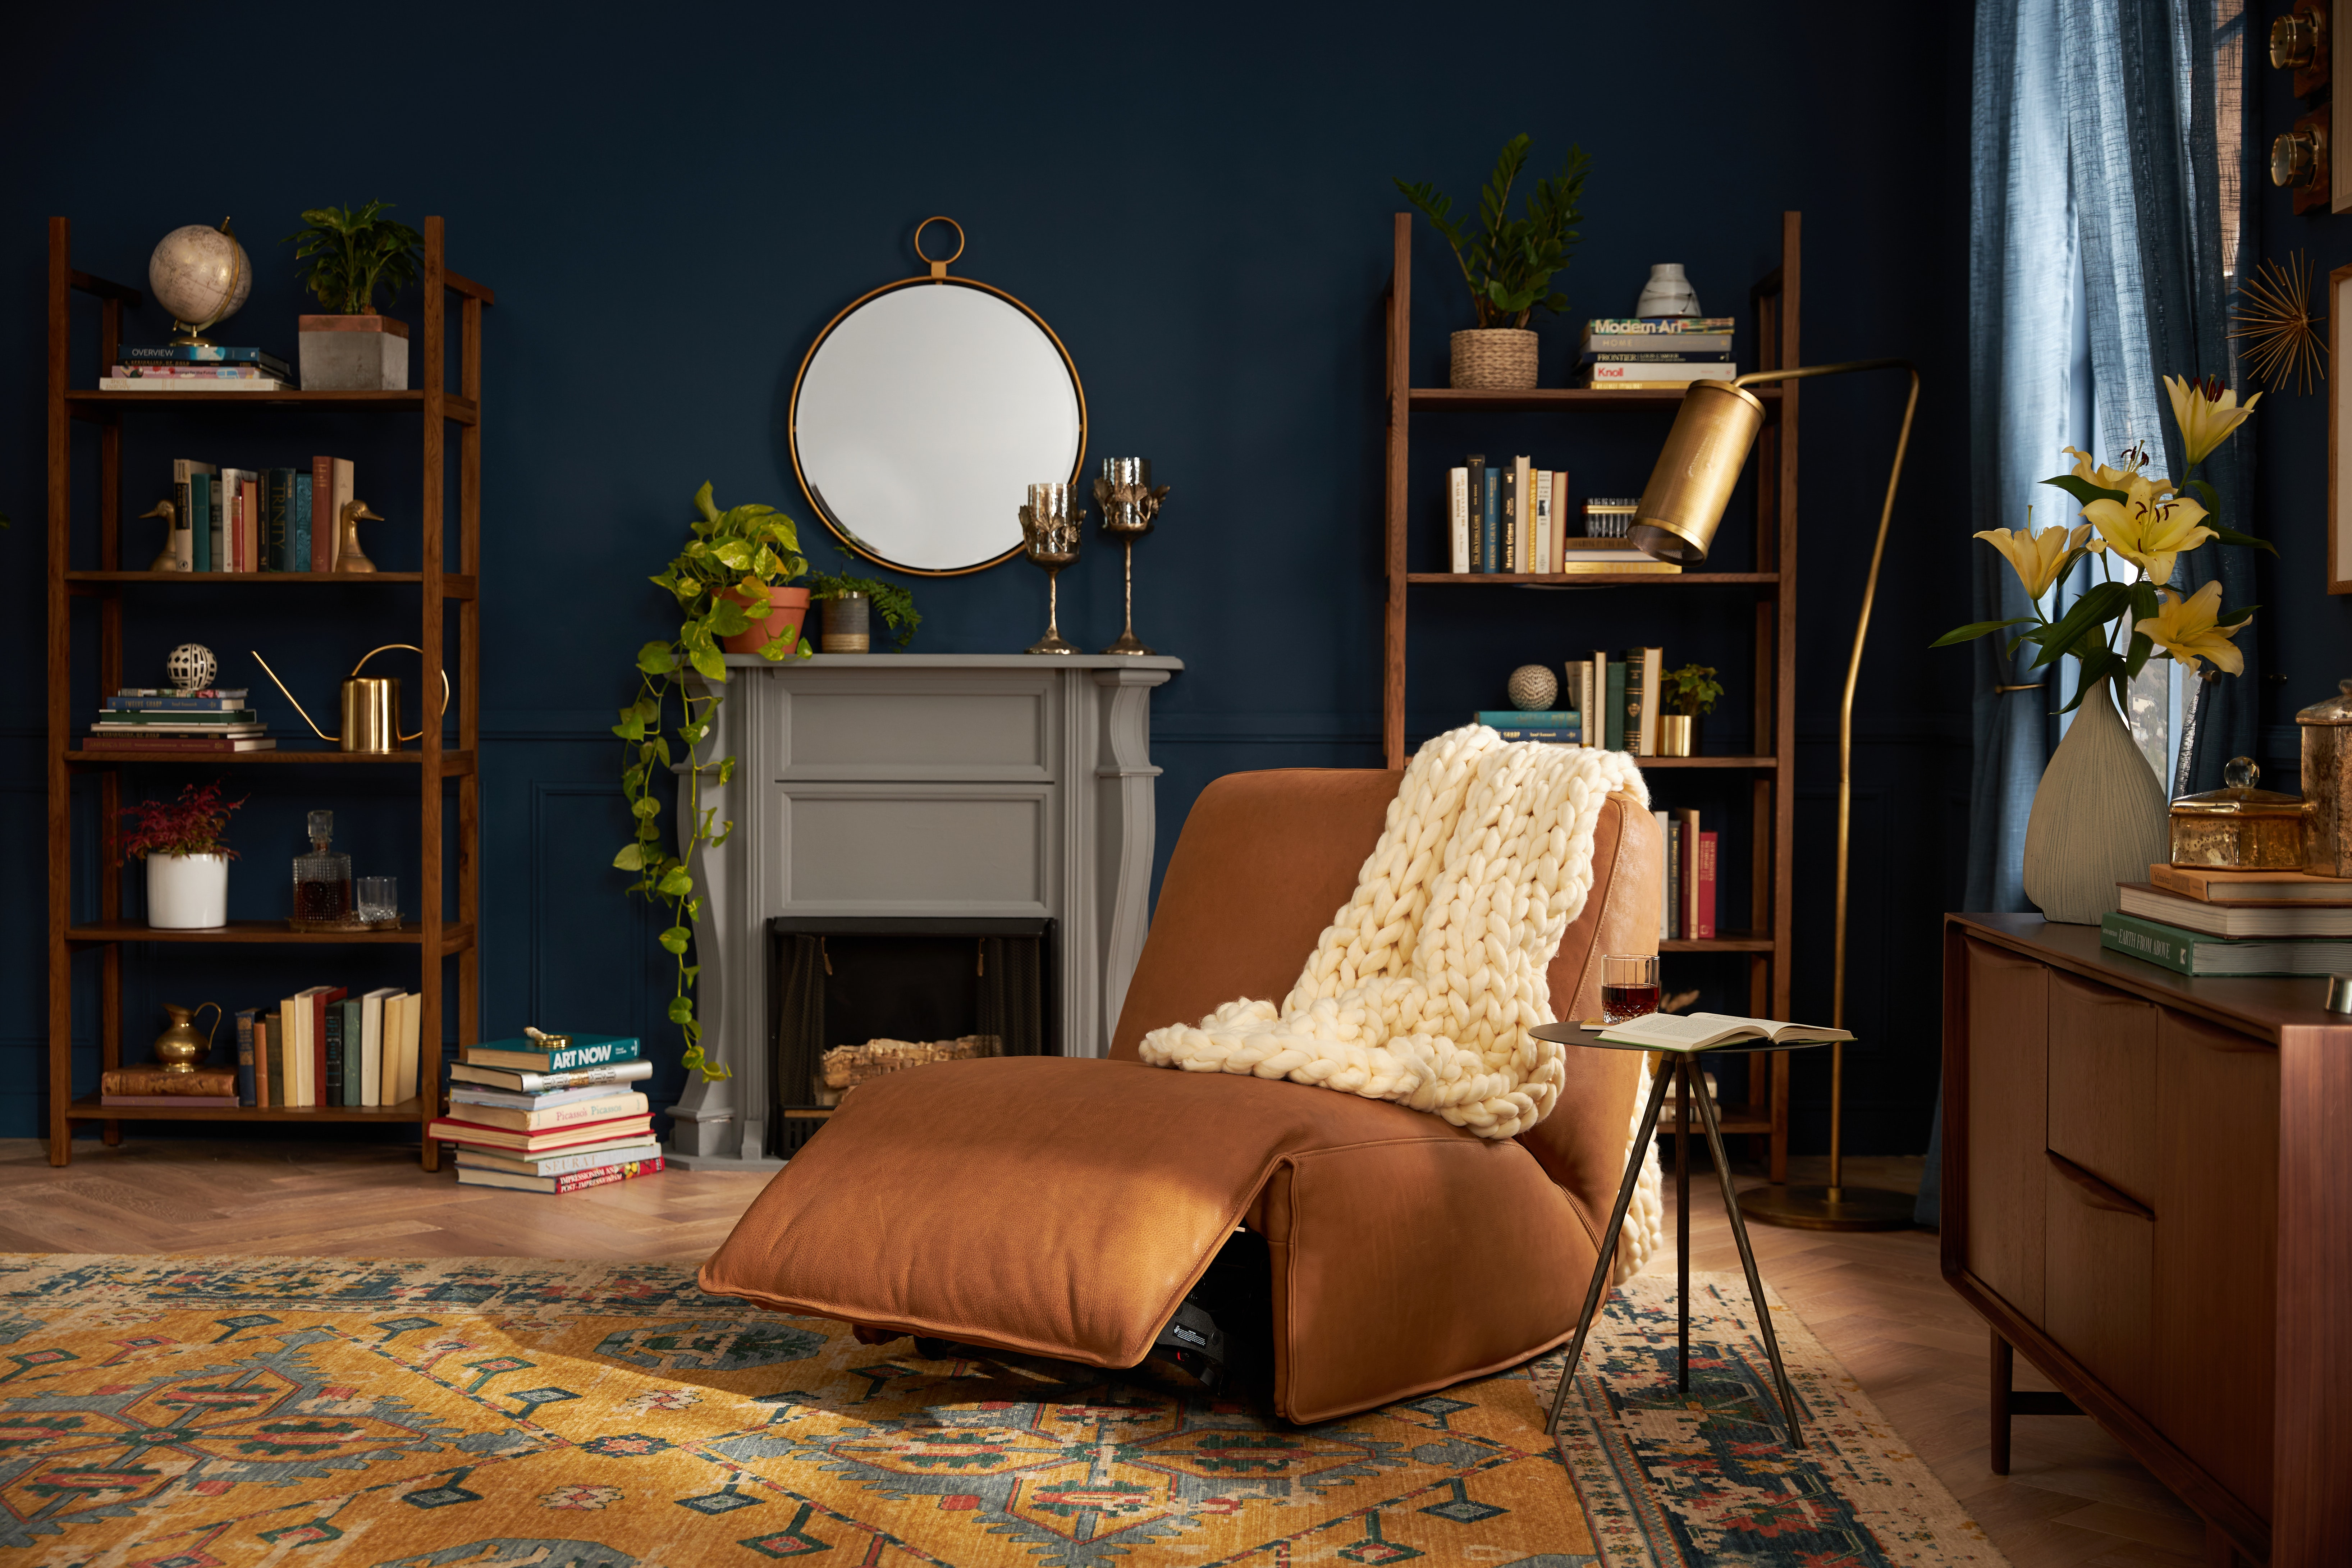 Clover Leather Chair Toledo Camel PDP Open